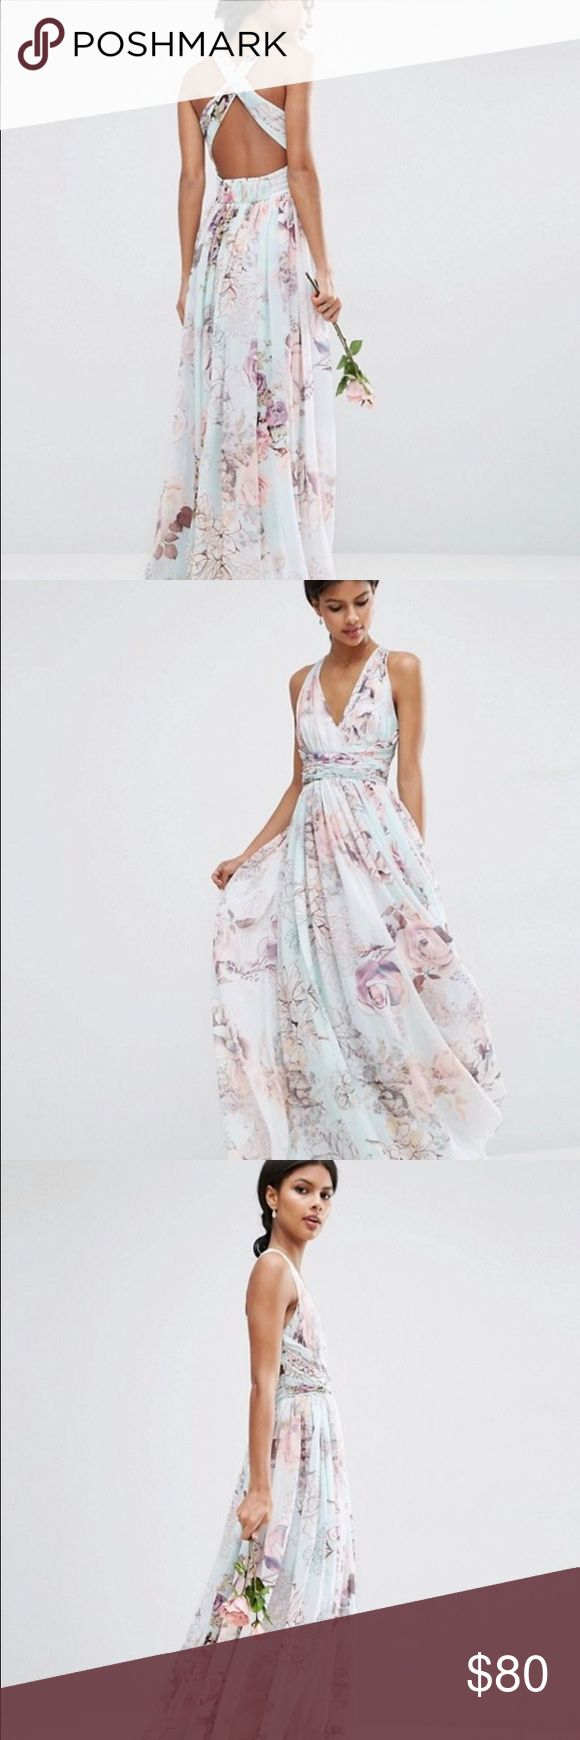 28 best images about beach family portraits styling ideas for Print maxi dress for wedding